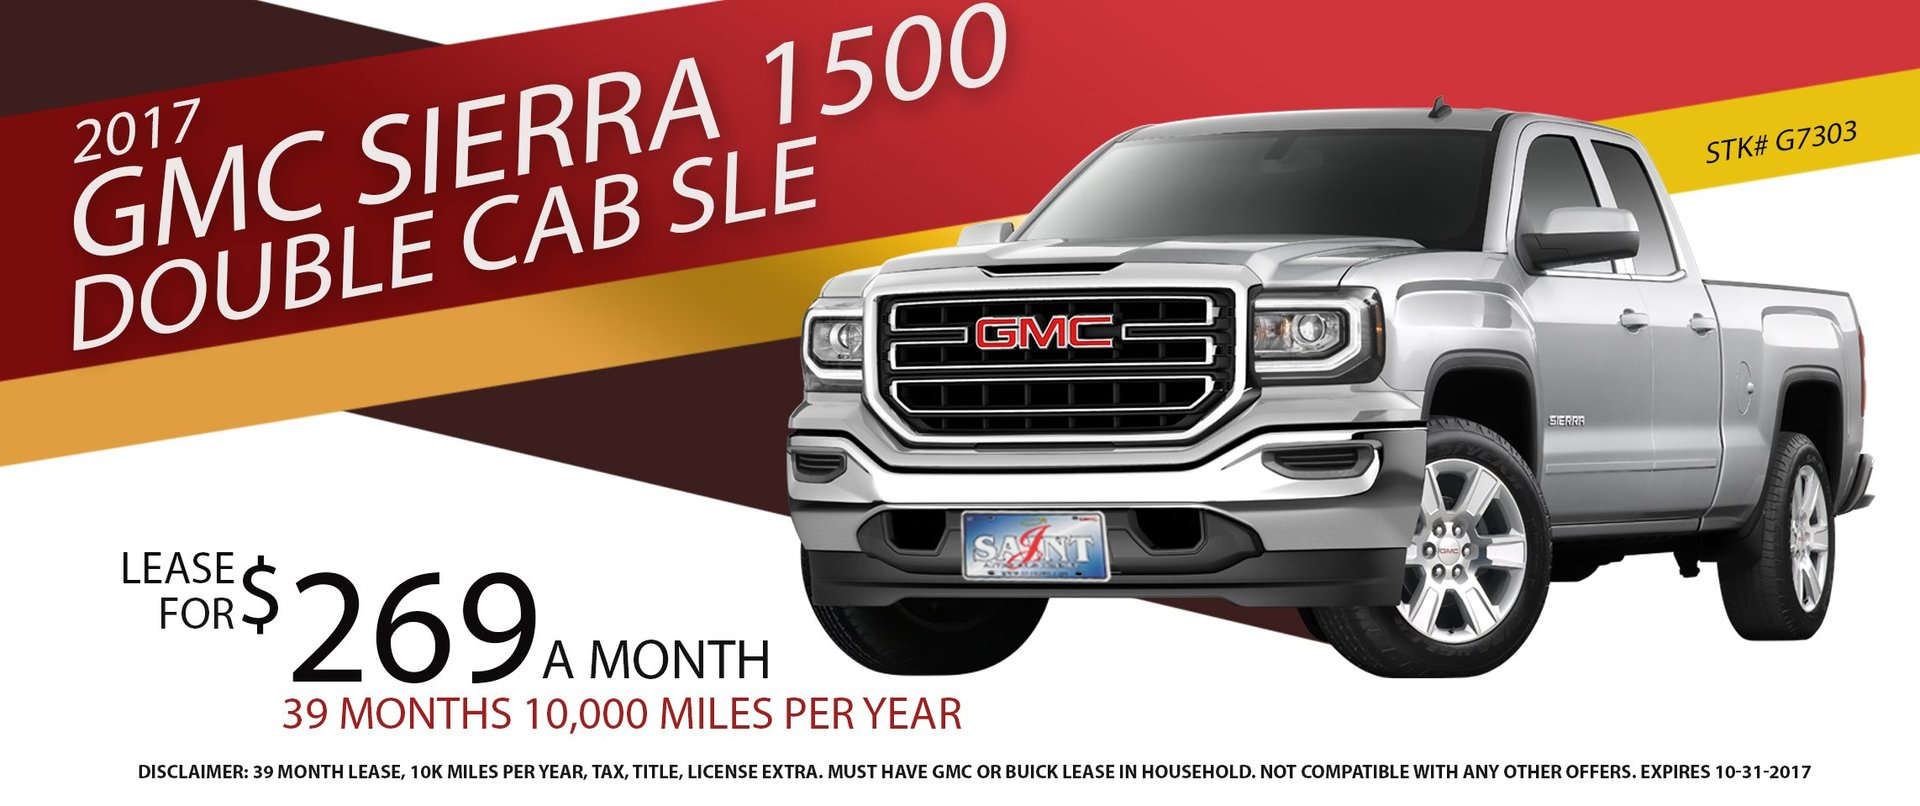 Lease a new 2017 GMC Sierra 1500 Double Cab SLE for $269/month !